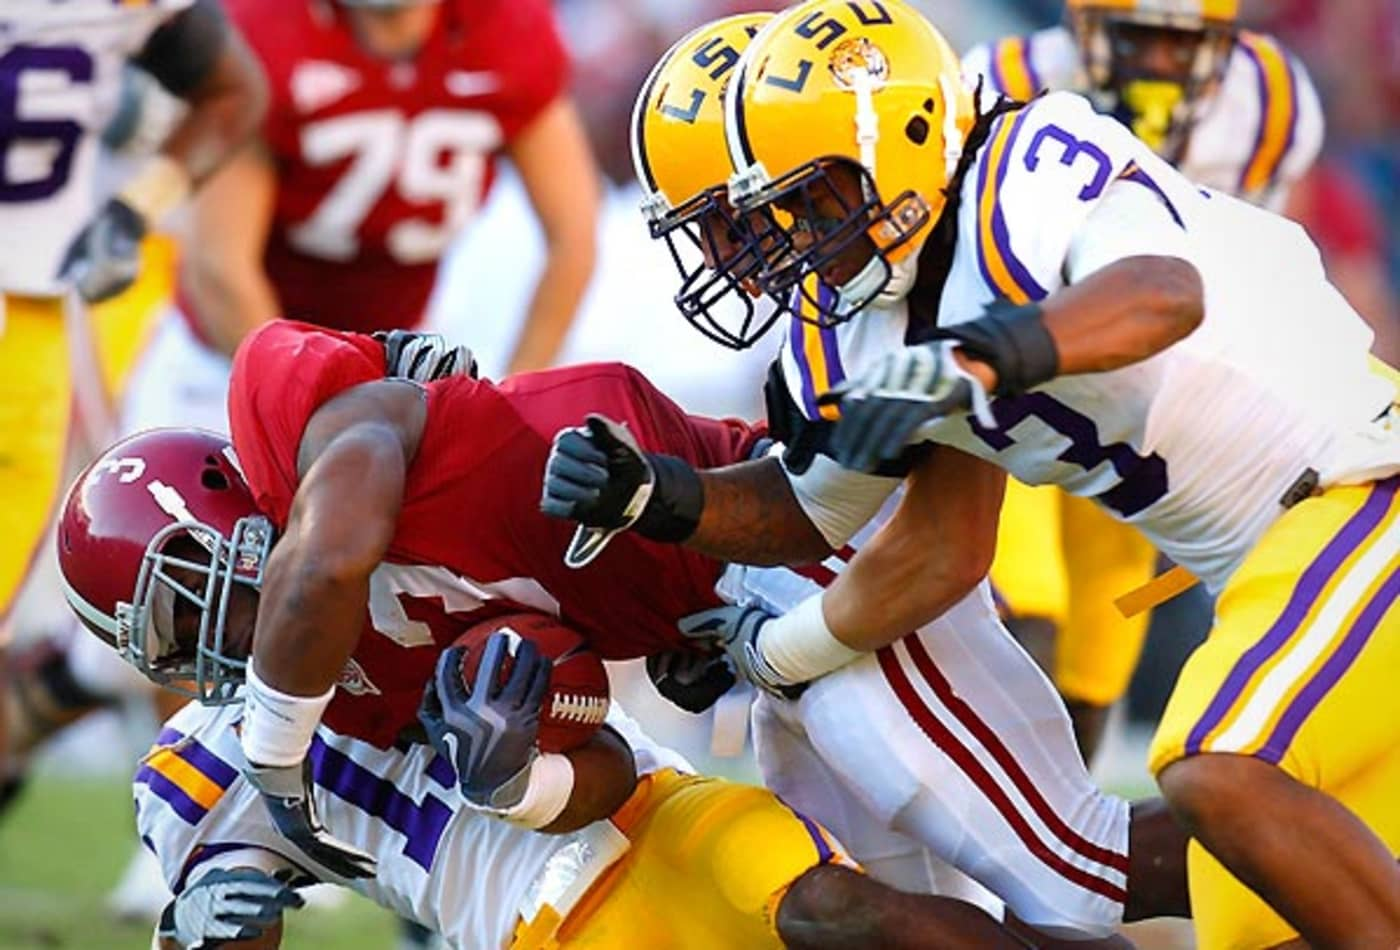 SS_Expensive_College_Football_Tix_2011_Bama_LSU.jpg